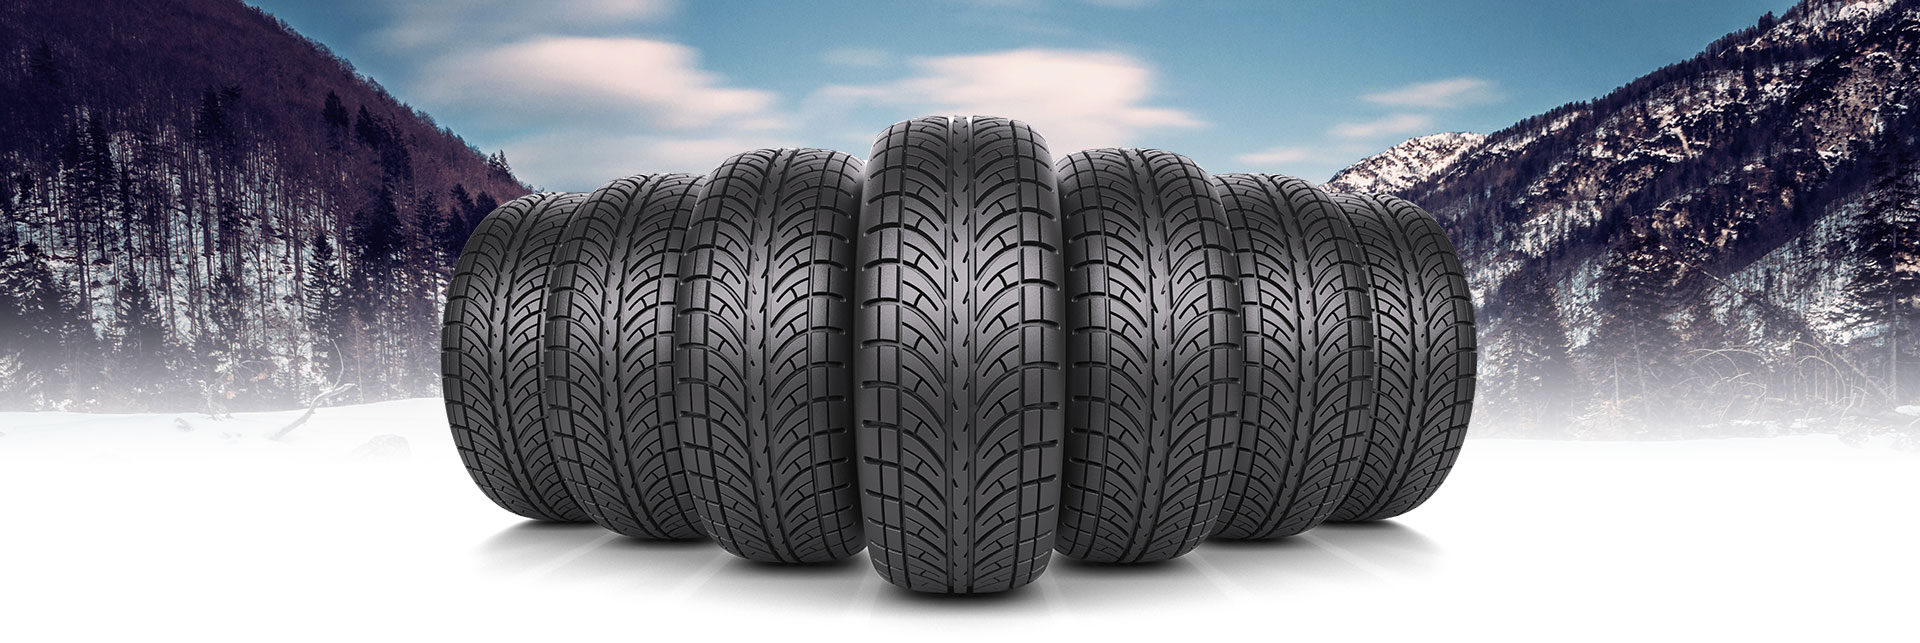 Orillia Snow Tires Winter Tires Packages